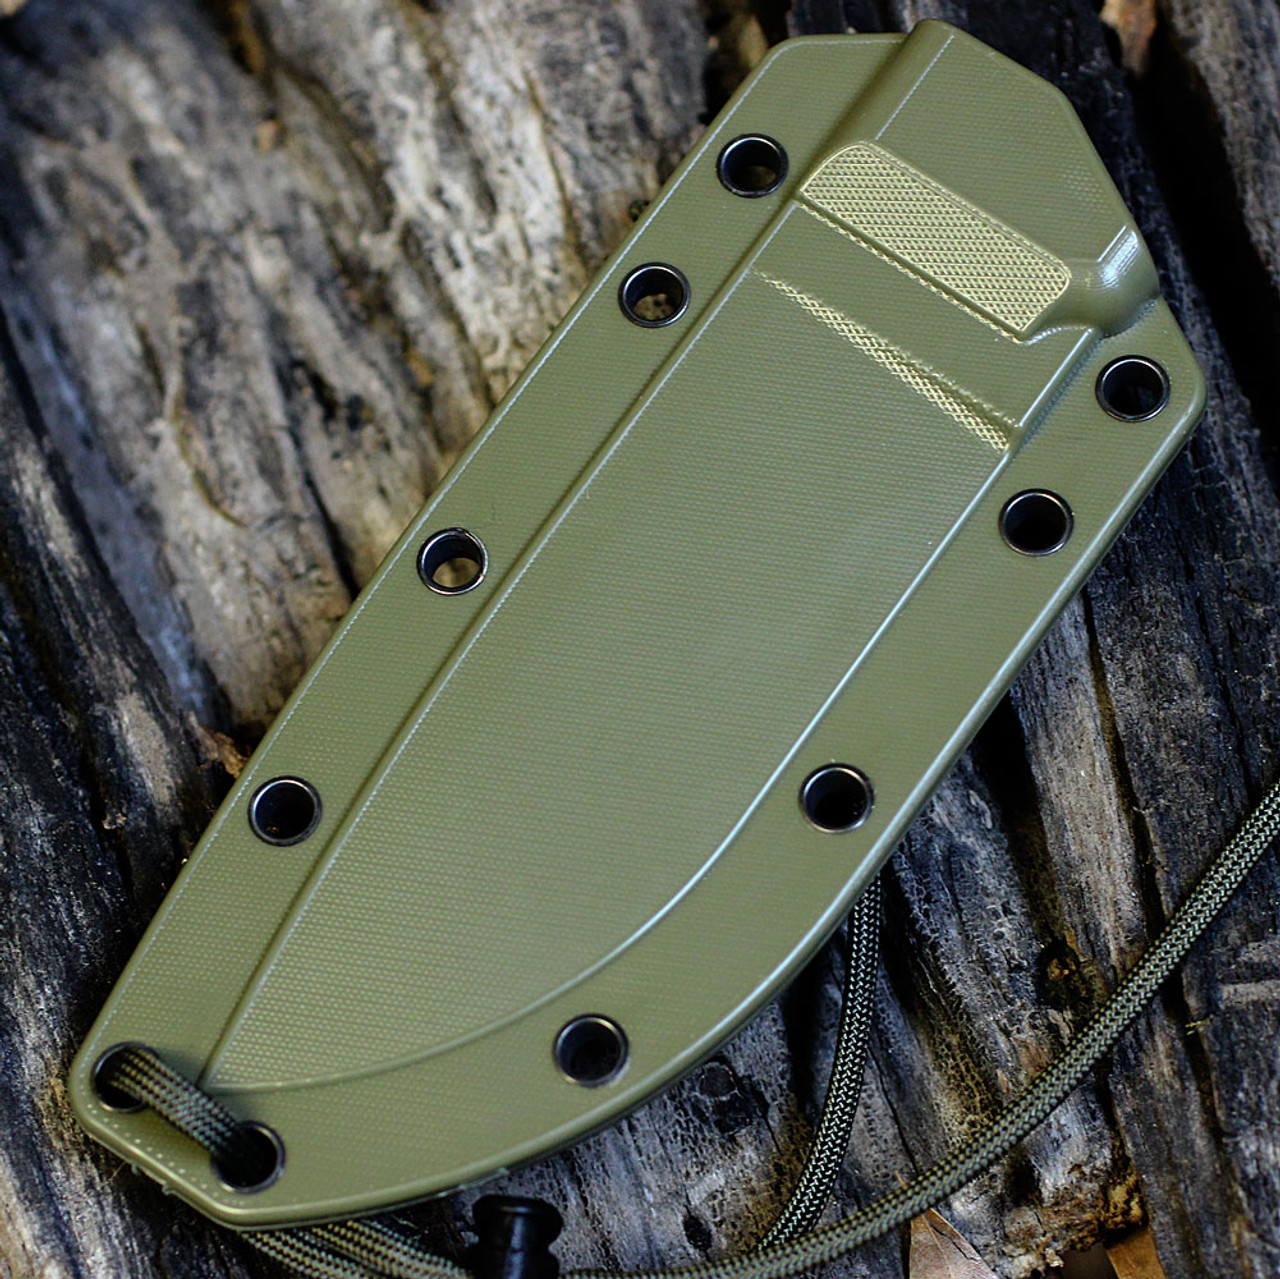 *ESEE 4P-MB-DT Desert Tan Blade, With Molle Back and Clip Plate, Plain Edge